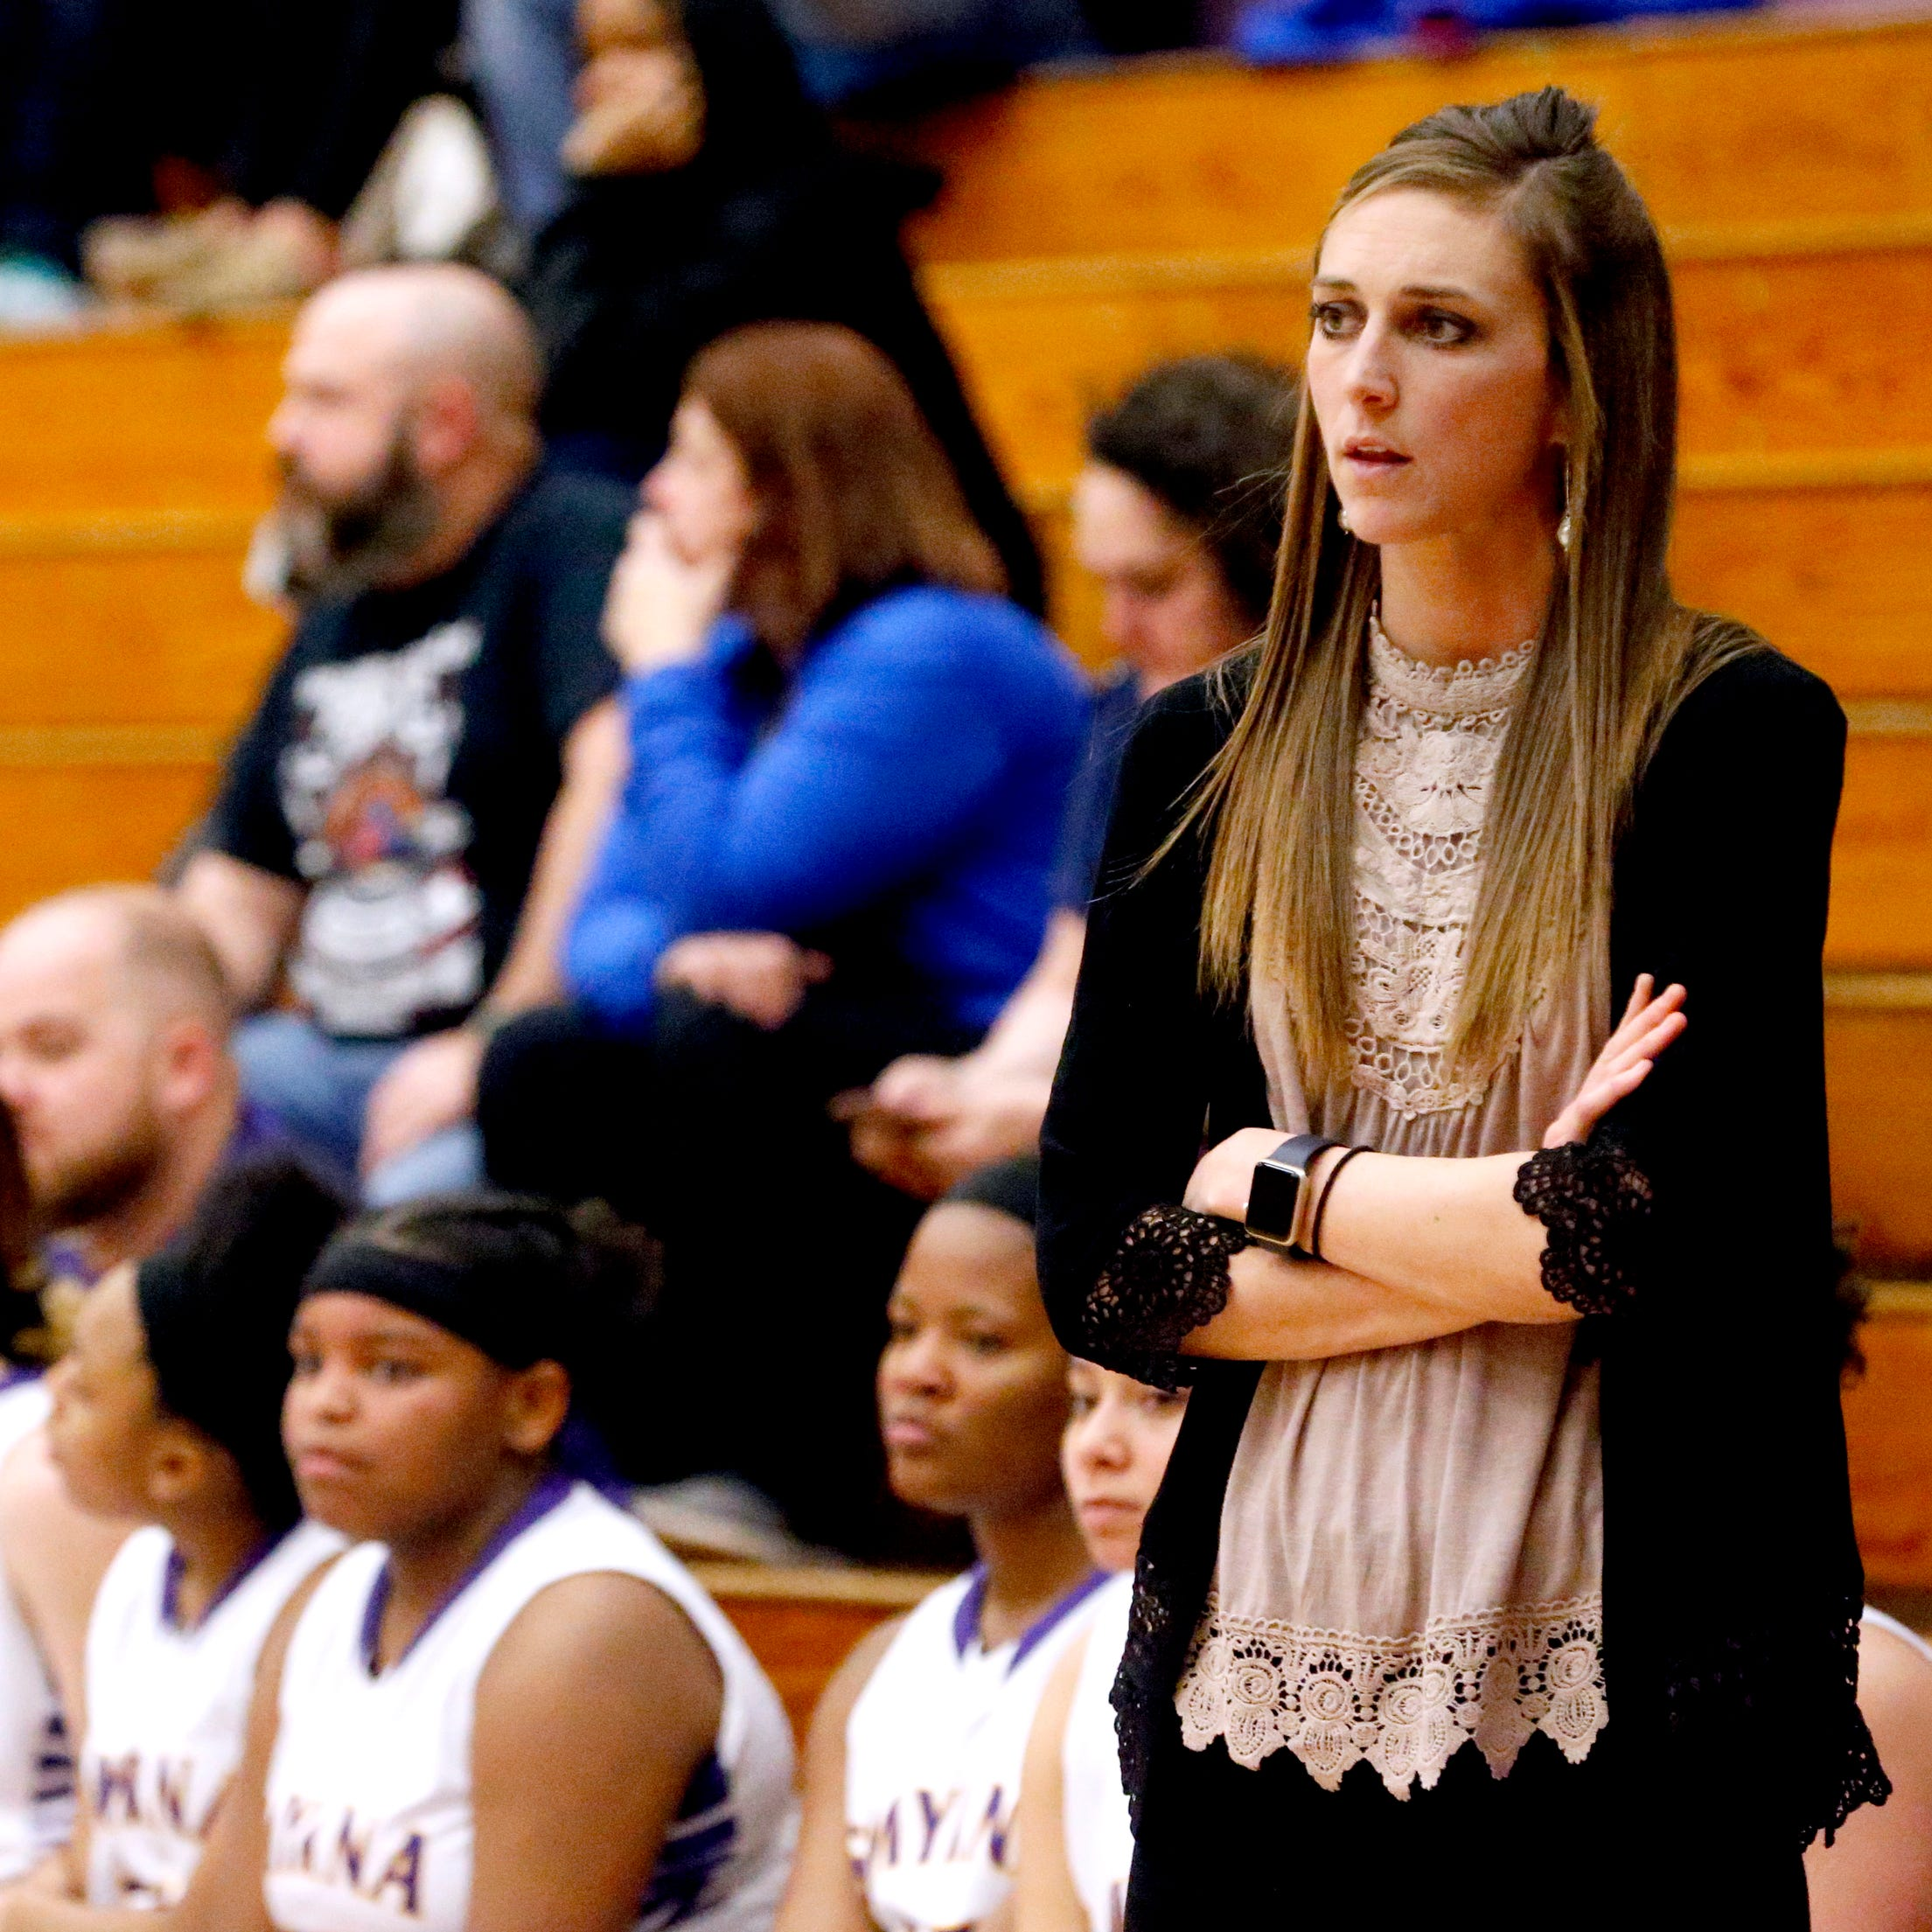 Smyrna's head coach Jordyn Hartsfield on the sidelines during the game against Oakland on Tuesday Jan. 22, 2019.